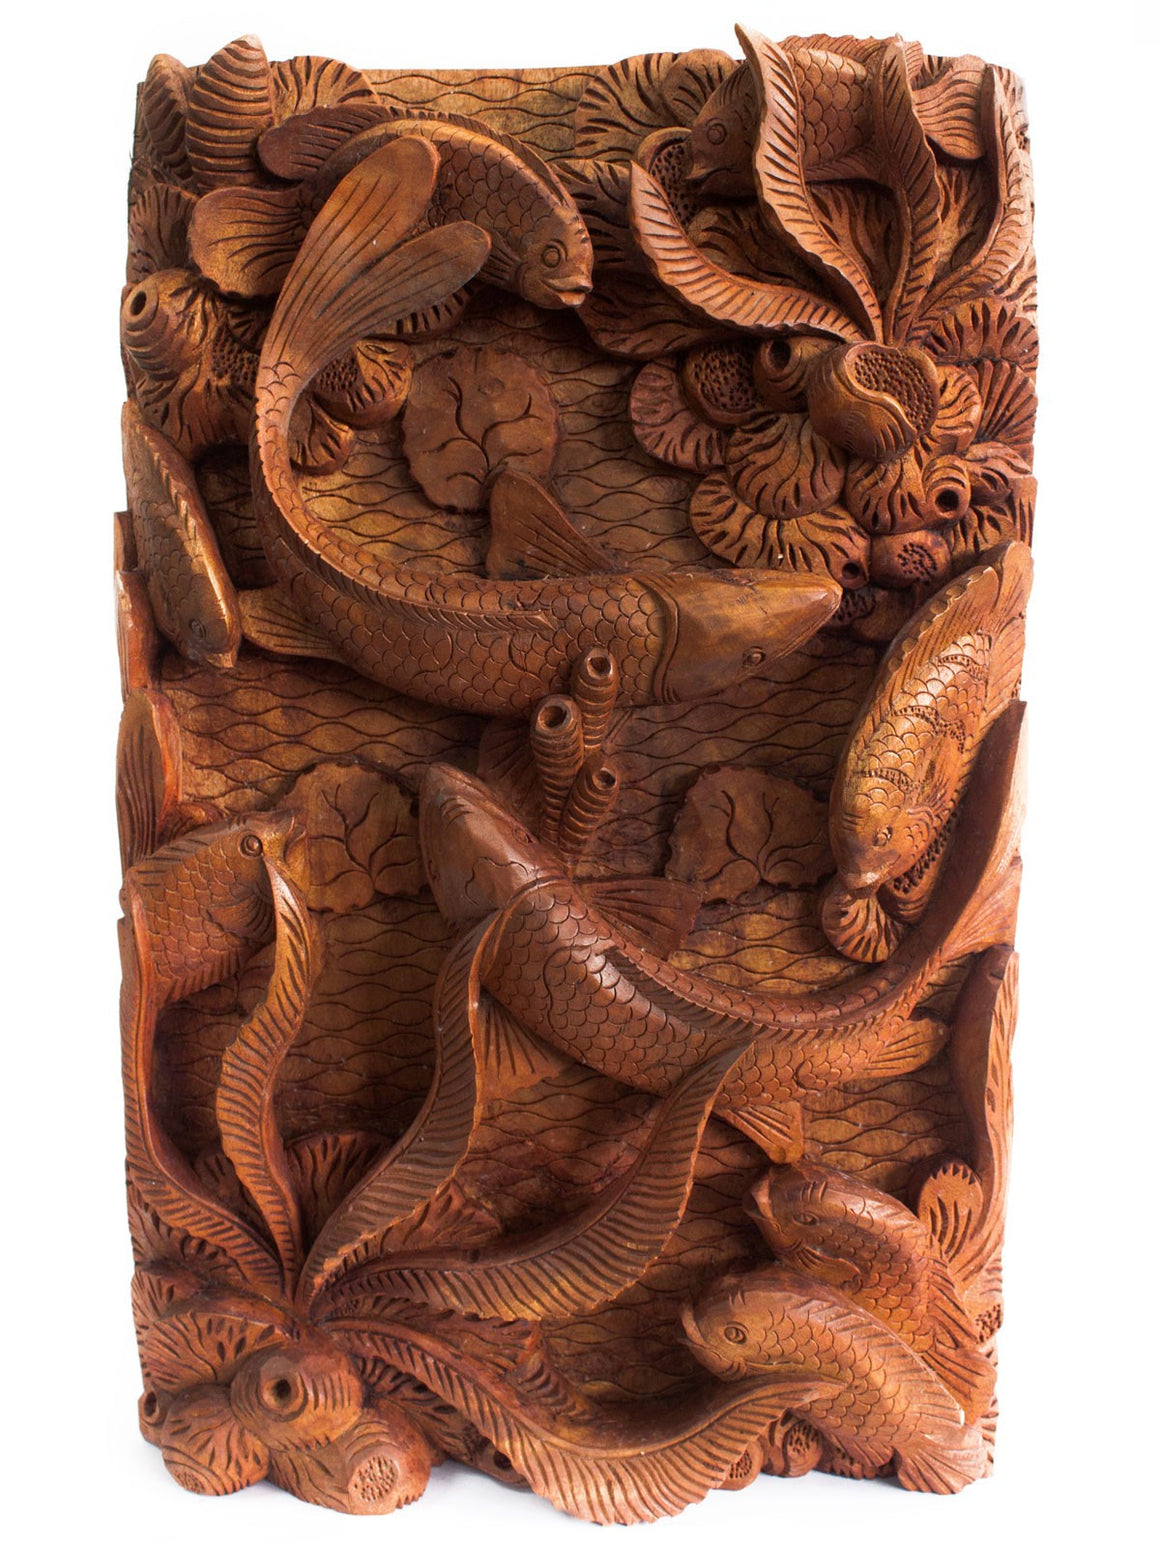 Artisan Hand Carved Fish & Coral Wooden Wall Panel